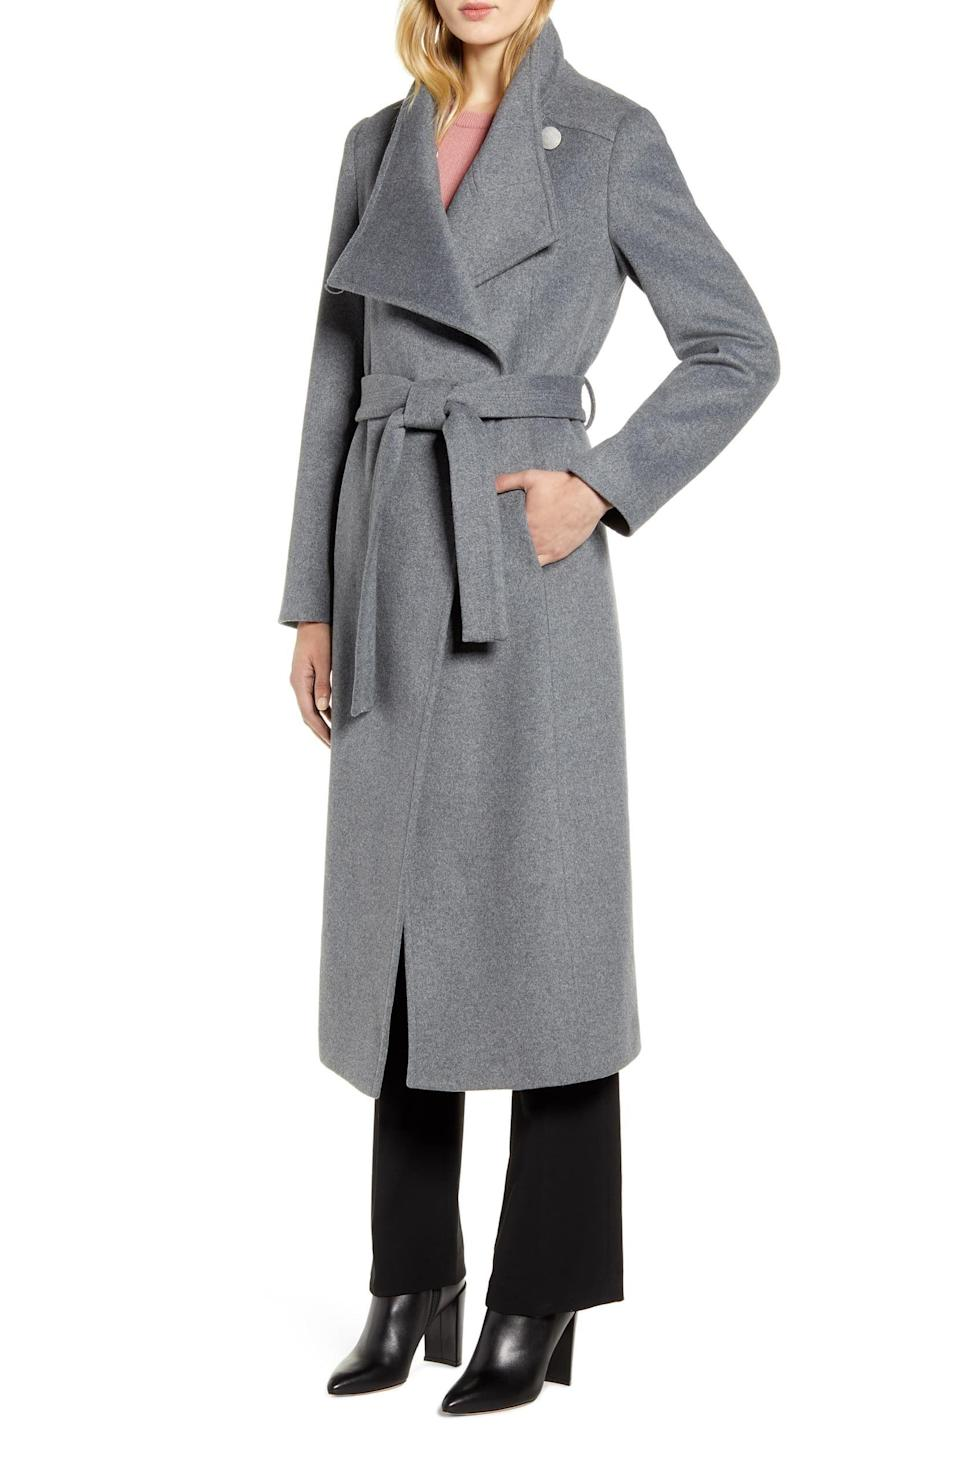 """<p><strong>KENNETH COLE NEW YORK</strong></p><p>nordstrom.com</p><p><strong>$178.00</strong></p><p><a href=""""https://go.redirectingat.com?id=74968X1596630&url=https%3A%2F%2Fshop.nordstrom.com%2Fs%2Fkenneth-cole-new-york-fencer-melton-wool-maxi-coat%2F5040952&sref=https%3A%2F%2Fwww.prevention.com%2Fbeauty%2Fstyle%2Fg29473259%2Fbest-winter-coats%2F"""" rel=""""nofollow noopener"""" target=""""_blank"""" data-ylk=""""slk:SHOP NOW"""" class=""""link rapid-noclick-resp"""">SHOP NOW</a></p><p>For an affordable price tag, this warm winter coat is made with 65 percent wool, 30 percent polyester, and five percent other fibers. We love its double-breasted design and <strong>tie belt that cinches perfectly around your waist</strong>. Nordstrom customers recommend ordering a size up so you won't feel constricted wearing bulkier pieces of clothing. </p><p>""""Classy long coat. Fits me well and still looks youthful. I received compliments the first night I stepped out in it! For the northeast it's perfect, so you can wear cute dresses and still feel weather appropriate,"""" a Nordstrom customer says. </p>"""